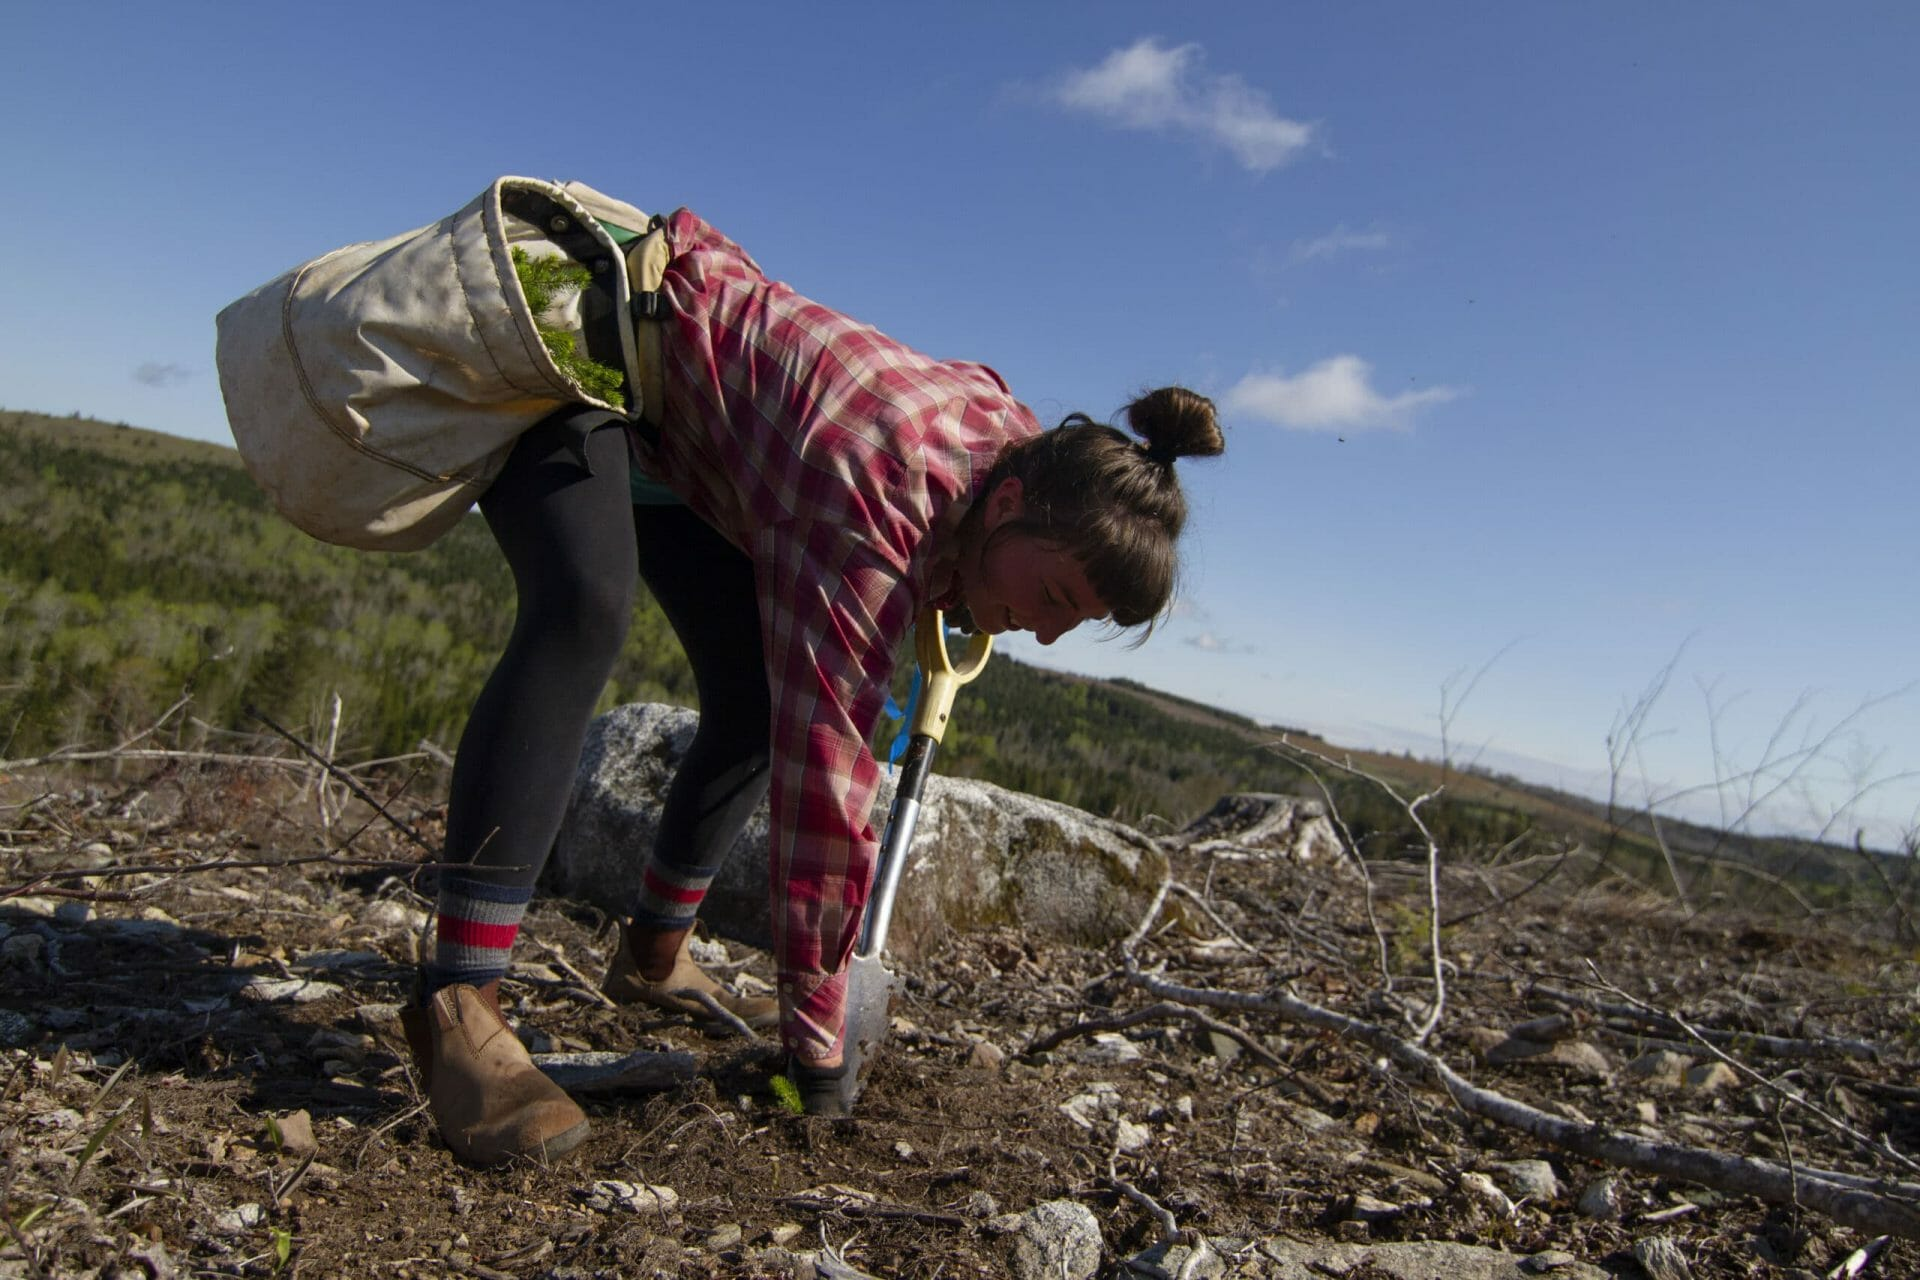 A woman wearing a pink plaid shirt bends over to plant a tree in a clearcut.